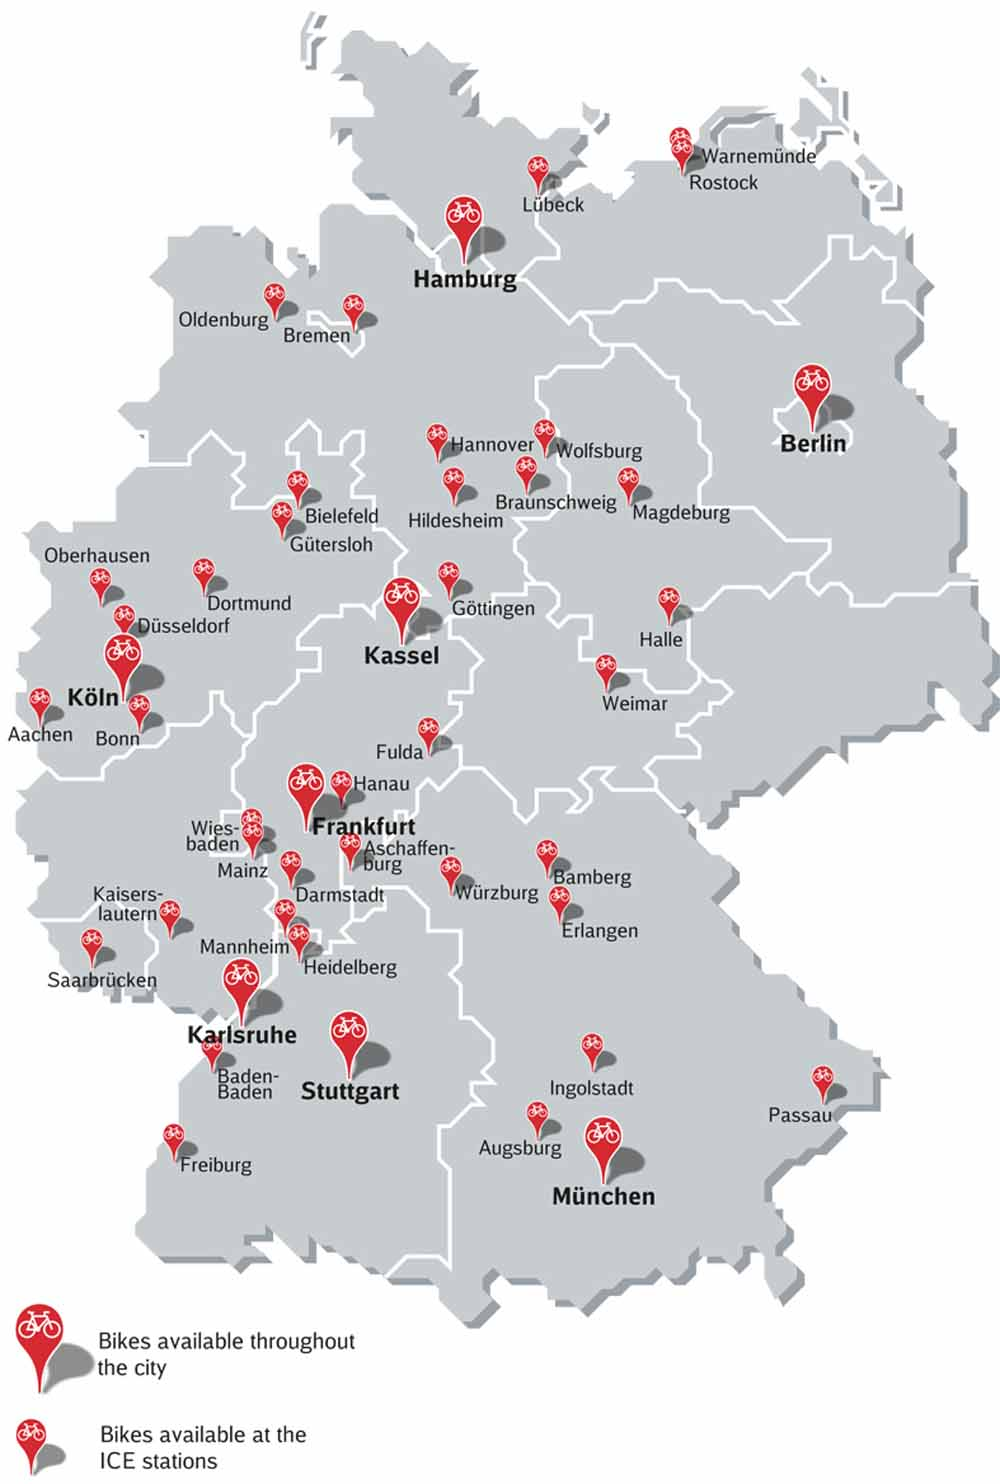 Rent Bicycles By The Day - Germany map with cities